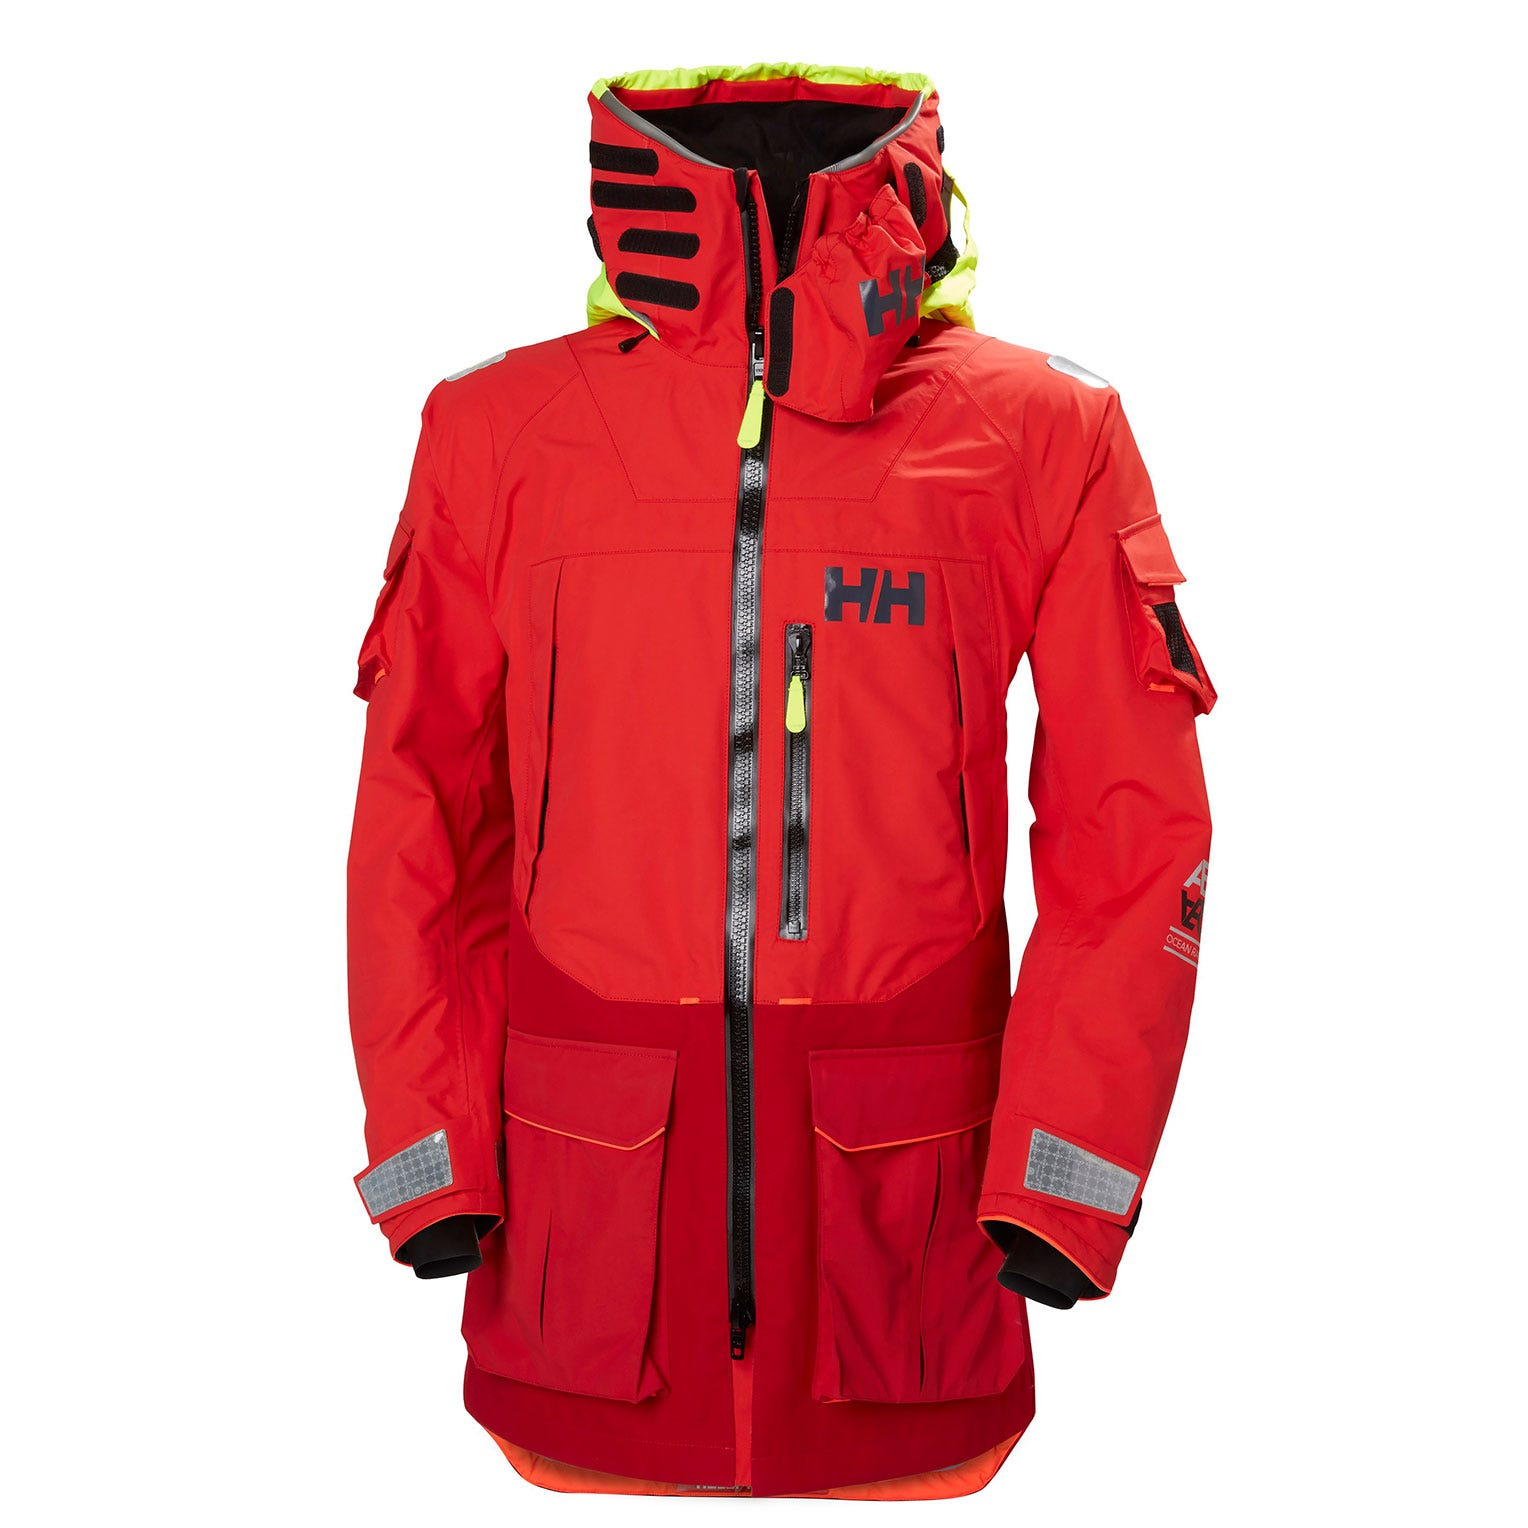 Helly Hansen Ægir Ocean Sailing Jacket Red L